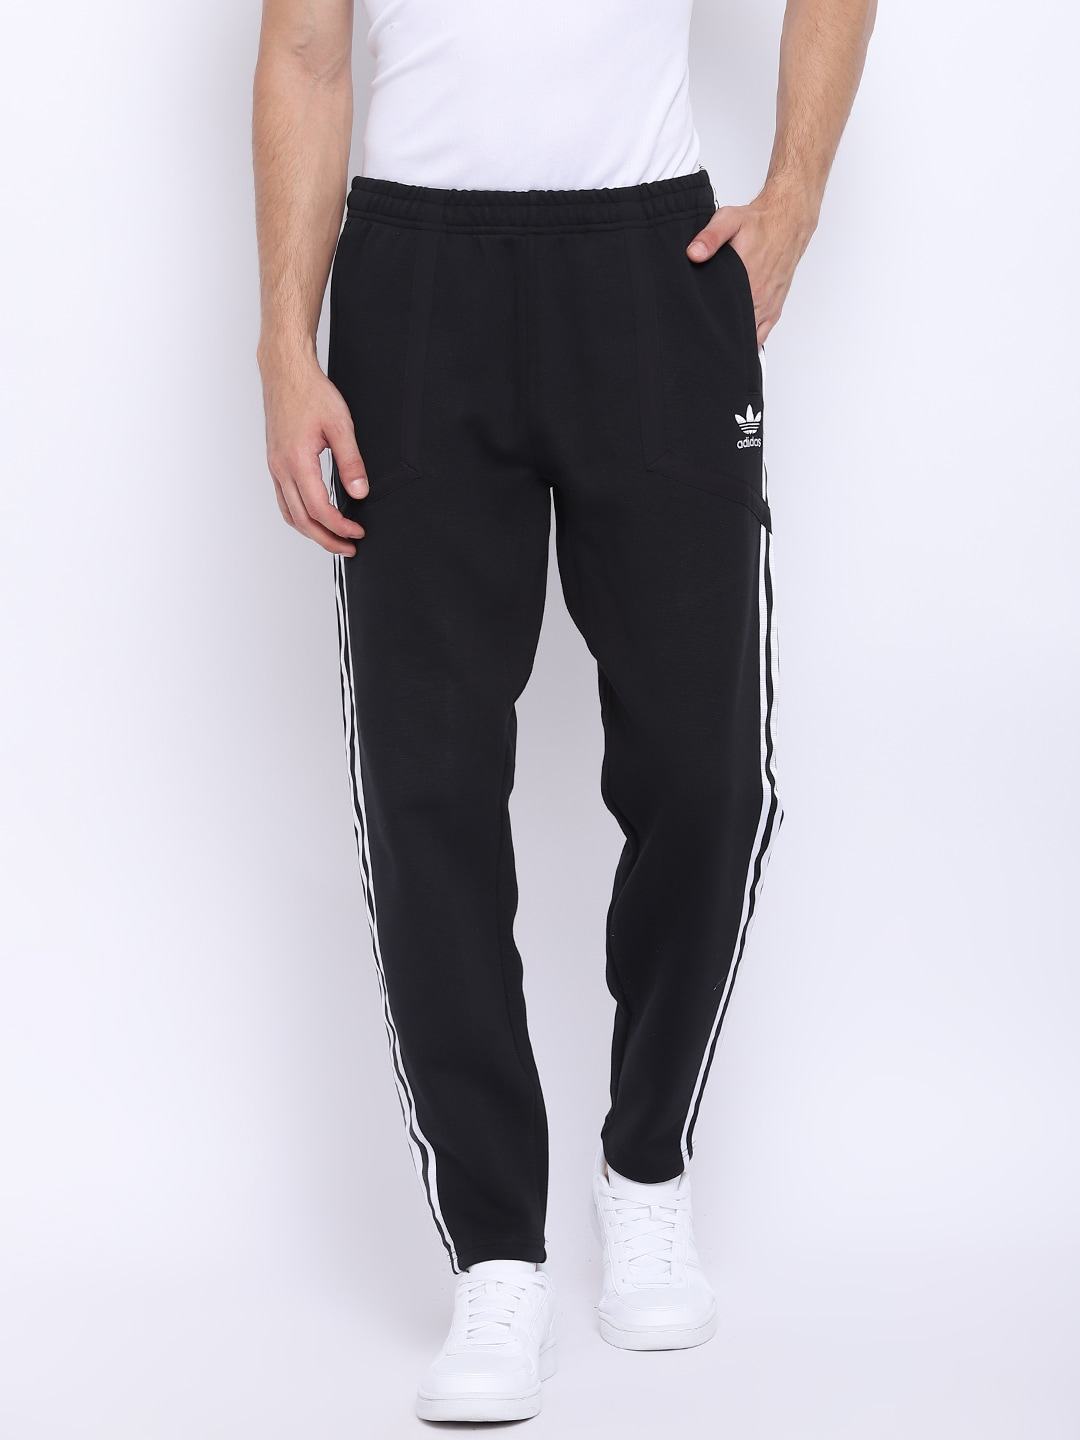 678566f2769b Adidas Originals Track Pants - Buy Adidas Originals Track Pants Online